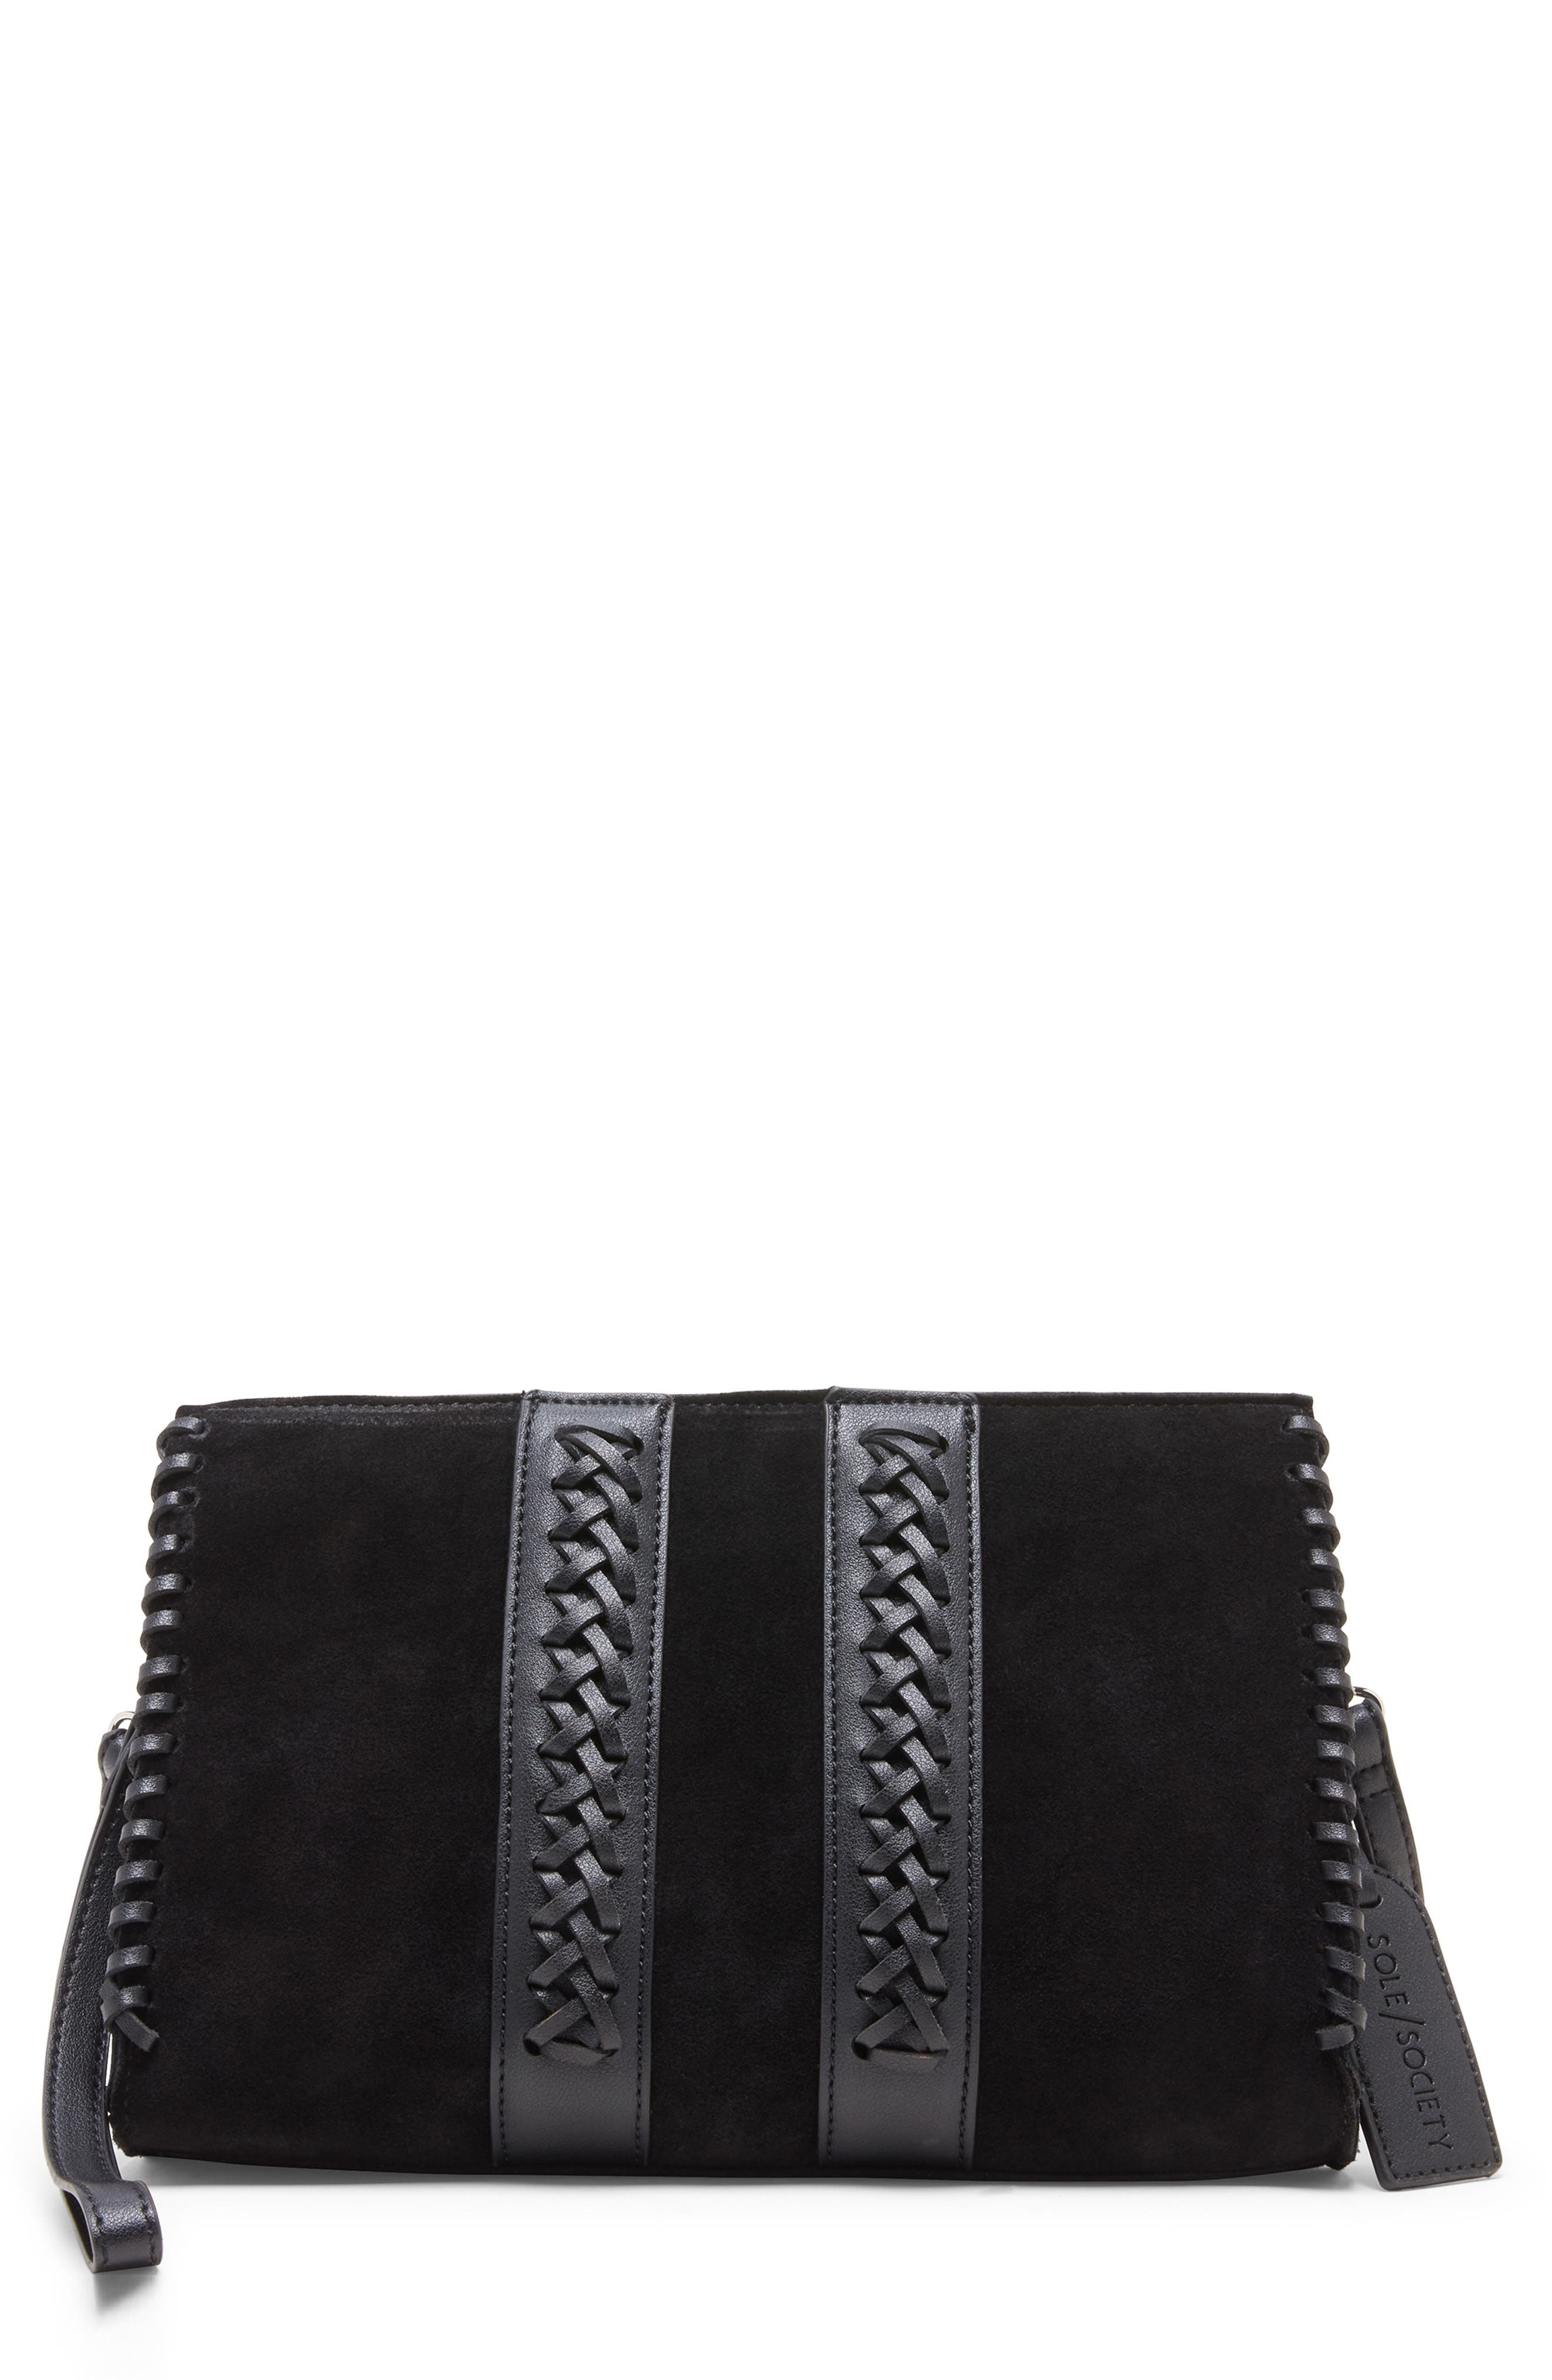 SOLE SOCIETY, Wahli Clutch, Main thumbnail 1, color, BLACK